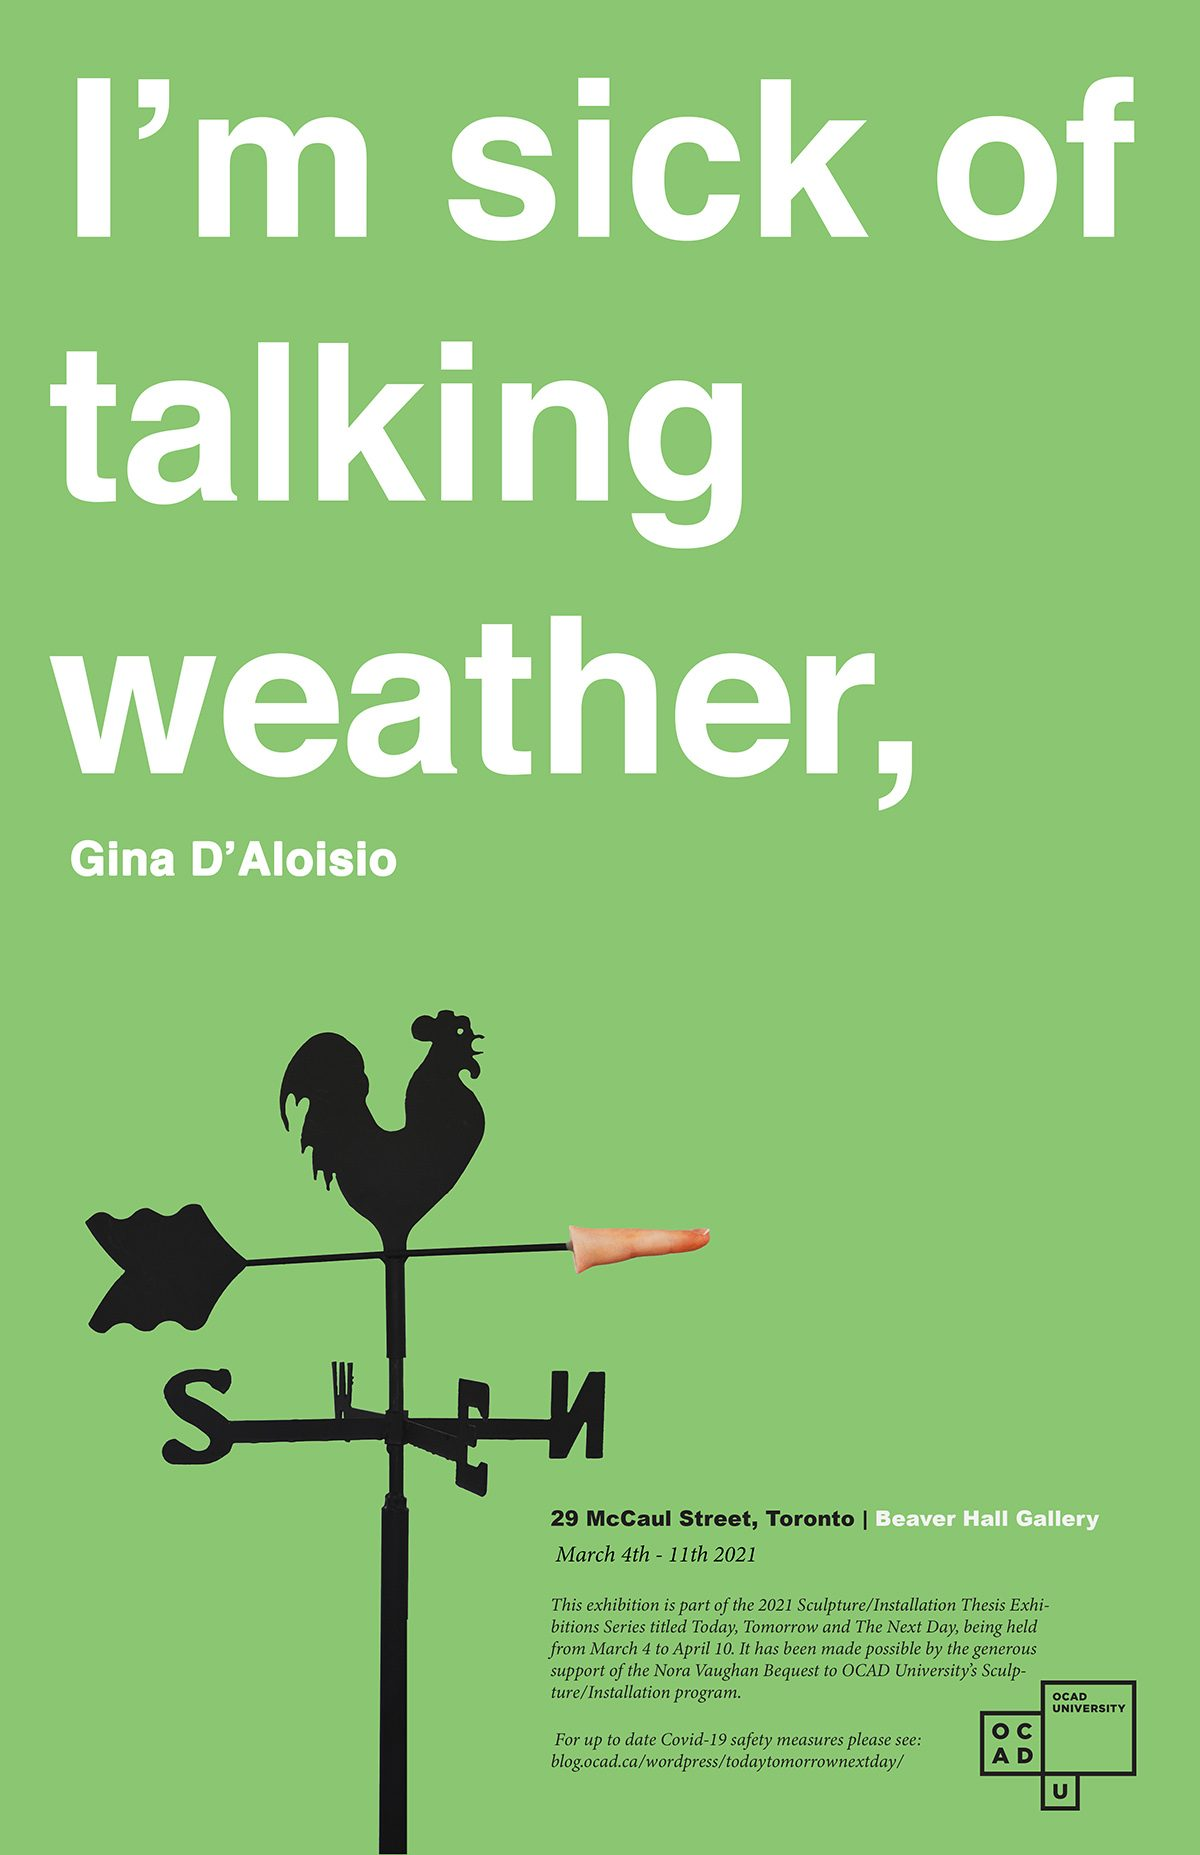 I'm sick of talking weather,